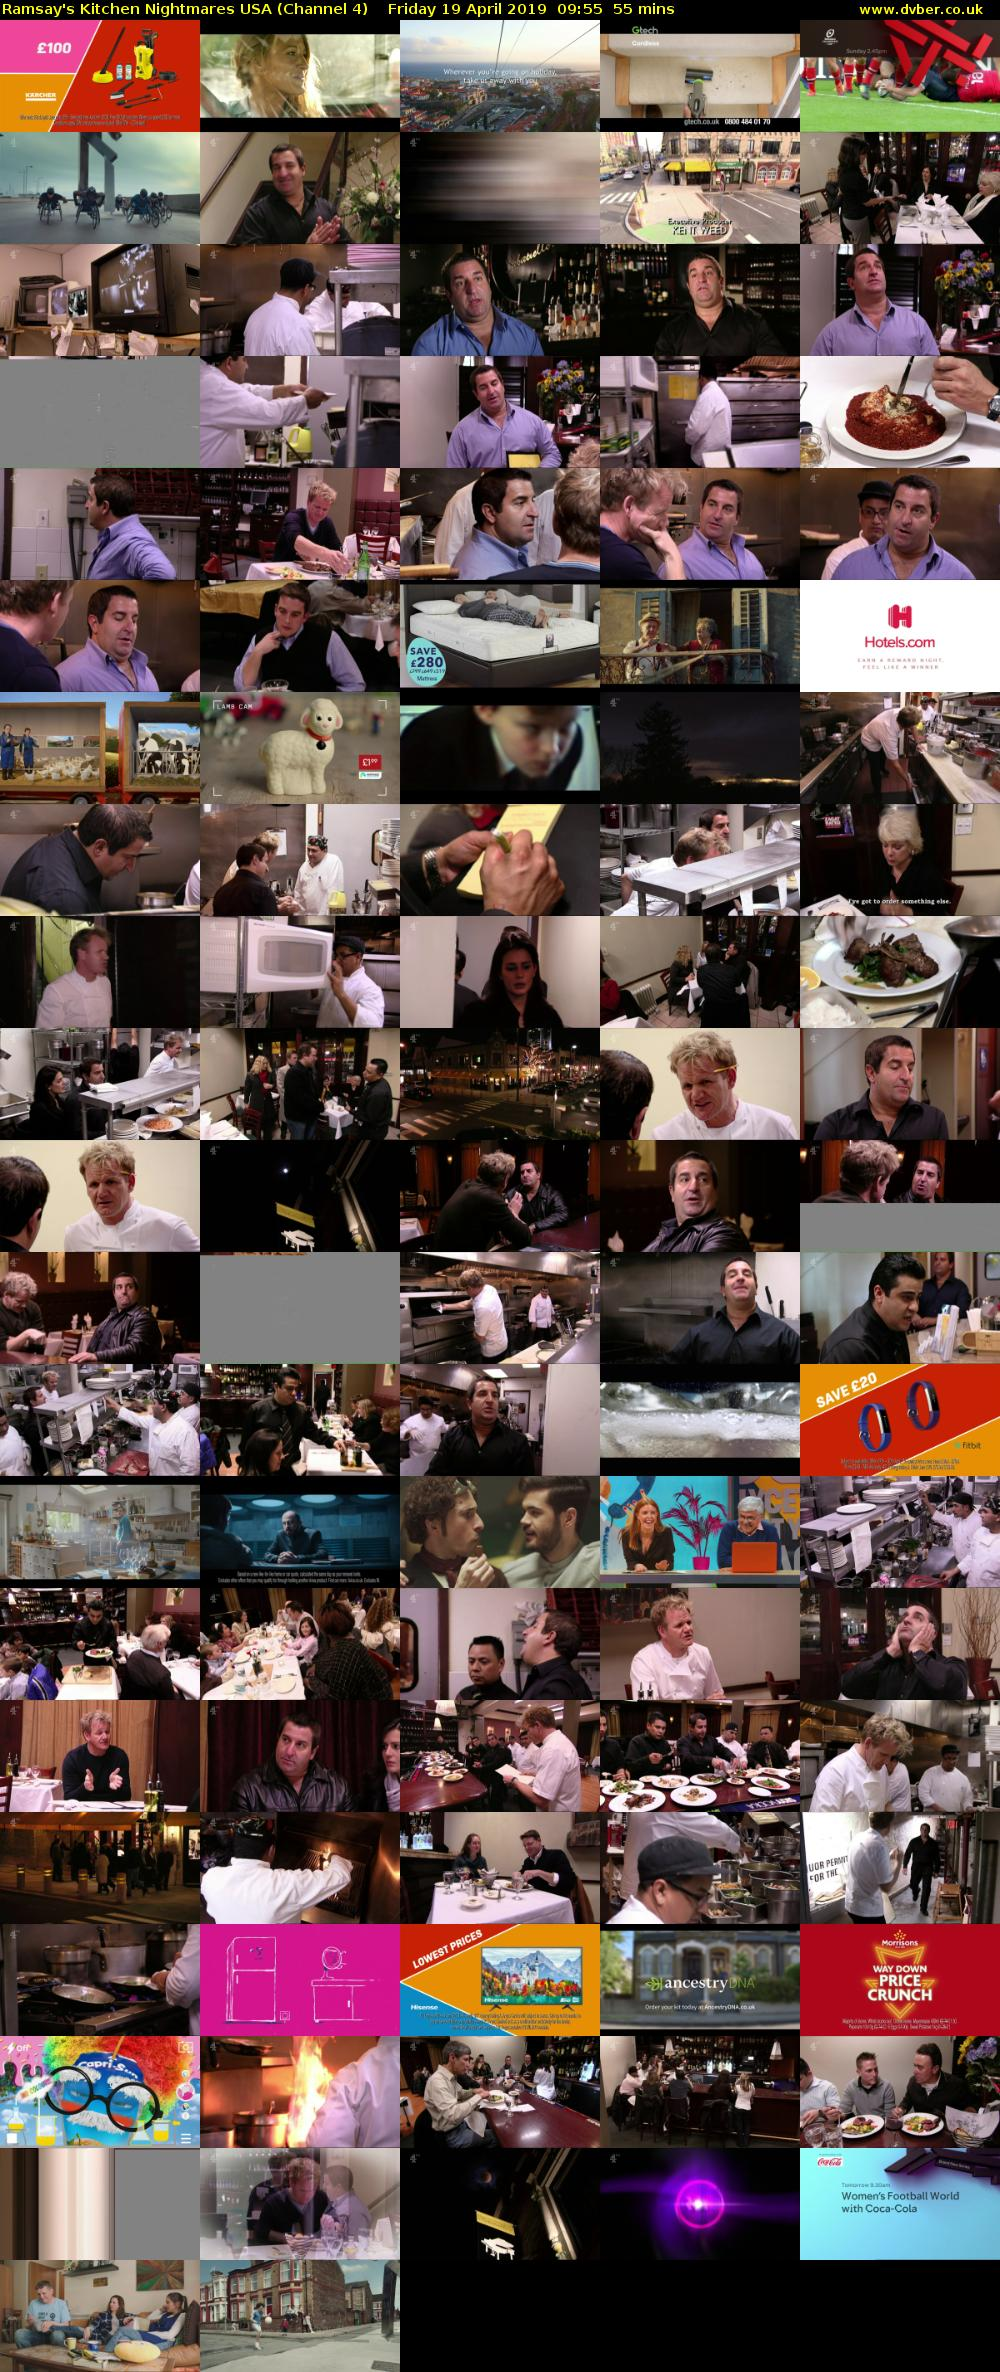 Ramsay's Kitchen Nightmares USA (Channel 4) Friday 19 April 2019 09:55 - 10:50